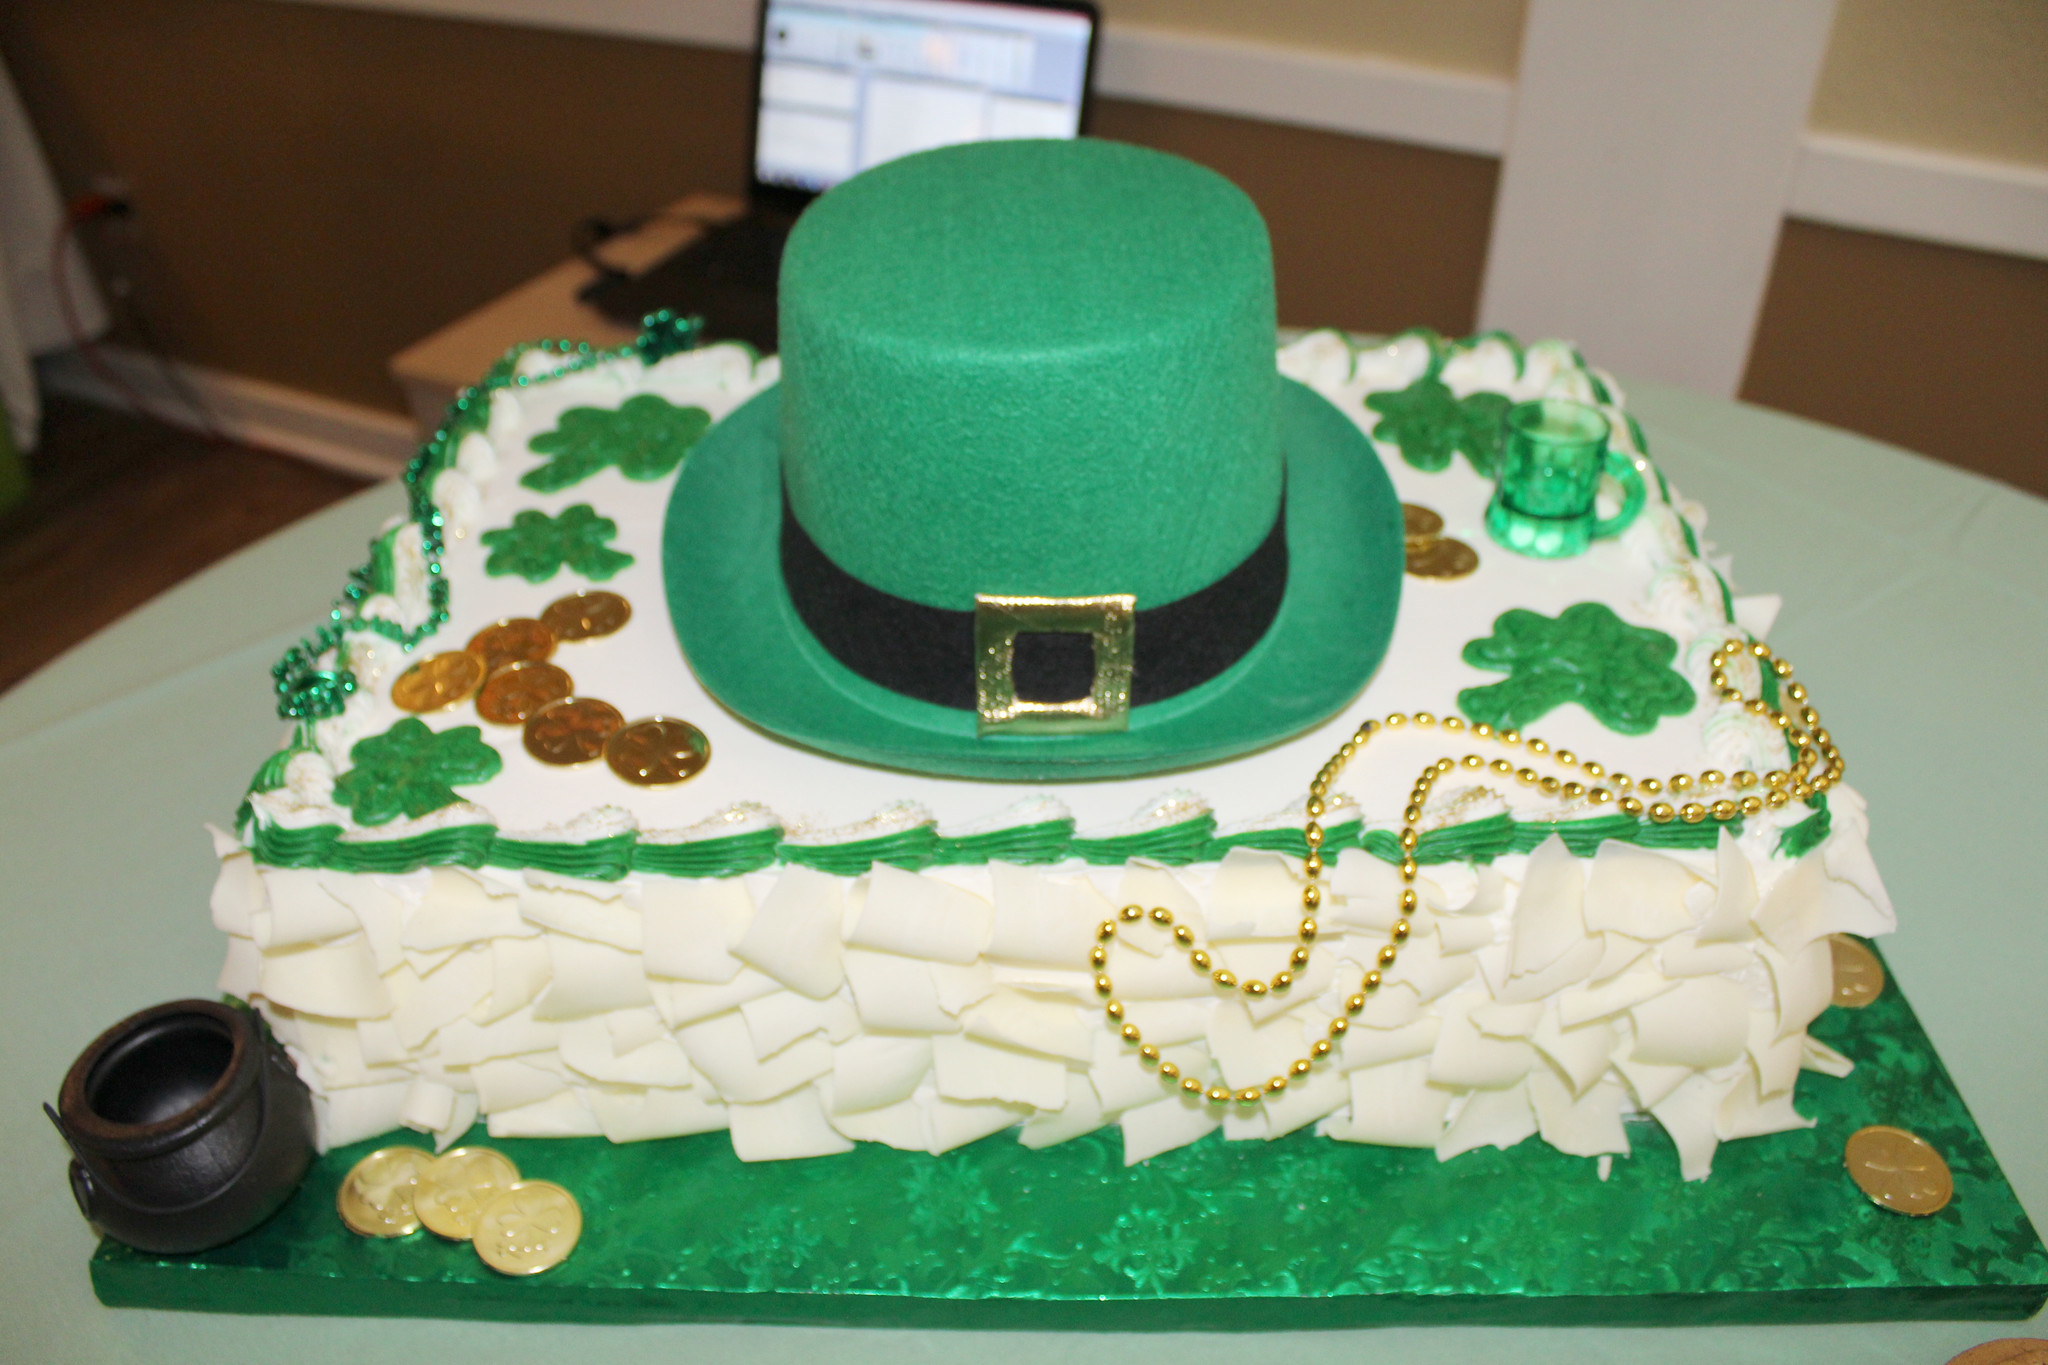 Lucky pennies, gold-colored coins, shamrocks, and a green hat top the evening's dessert.